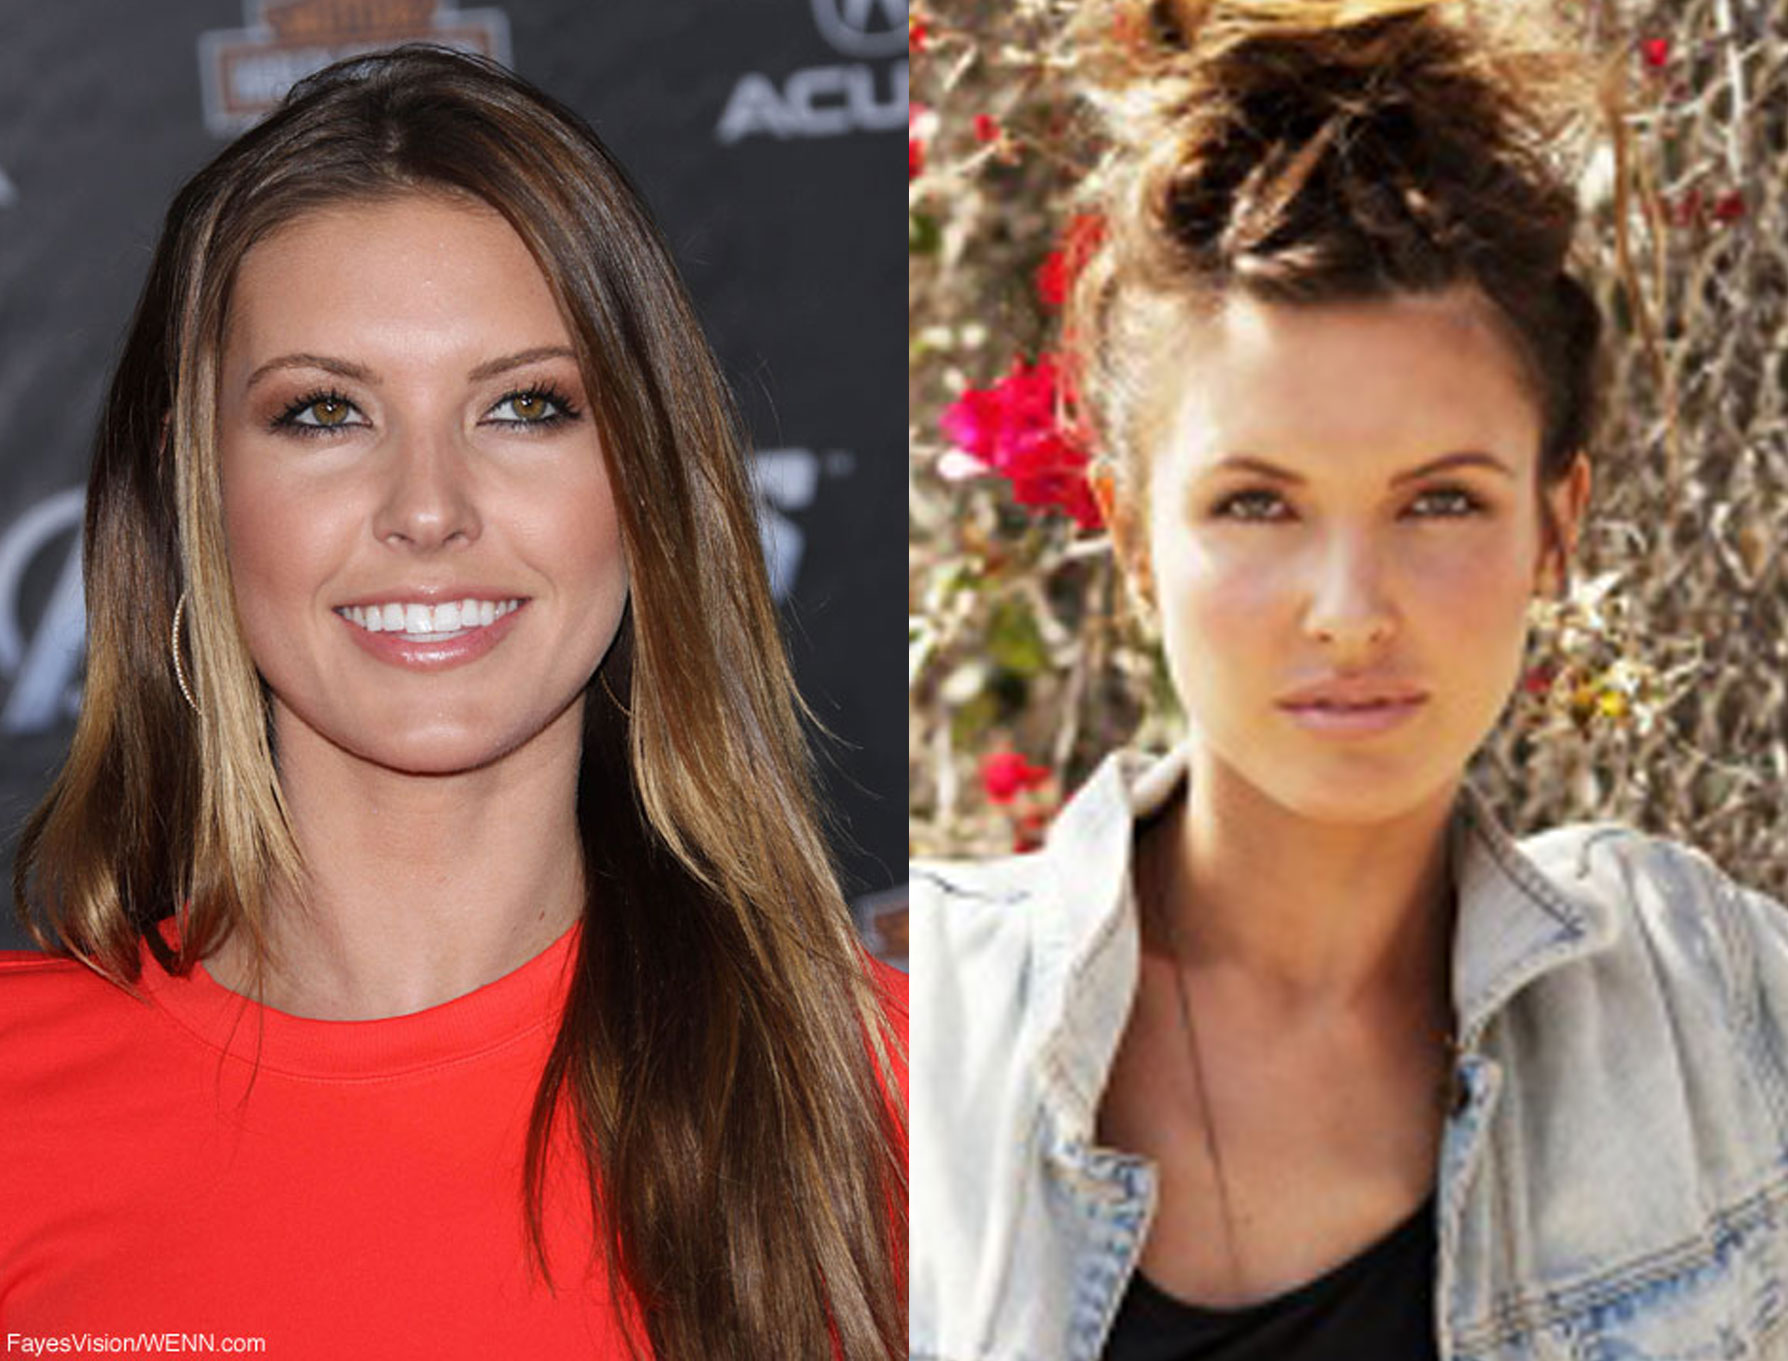 Audrina Patridge looks gorgeous wearing less makeup - starcasm.